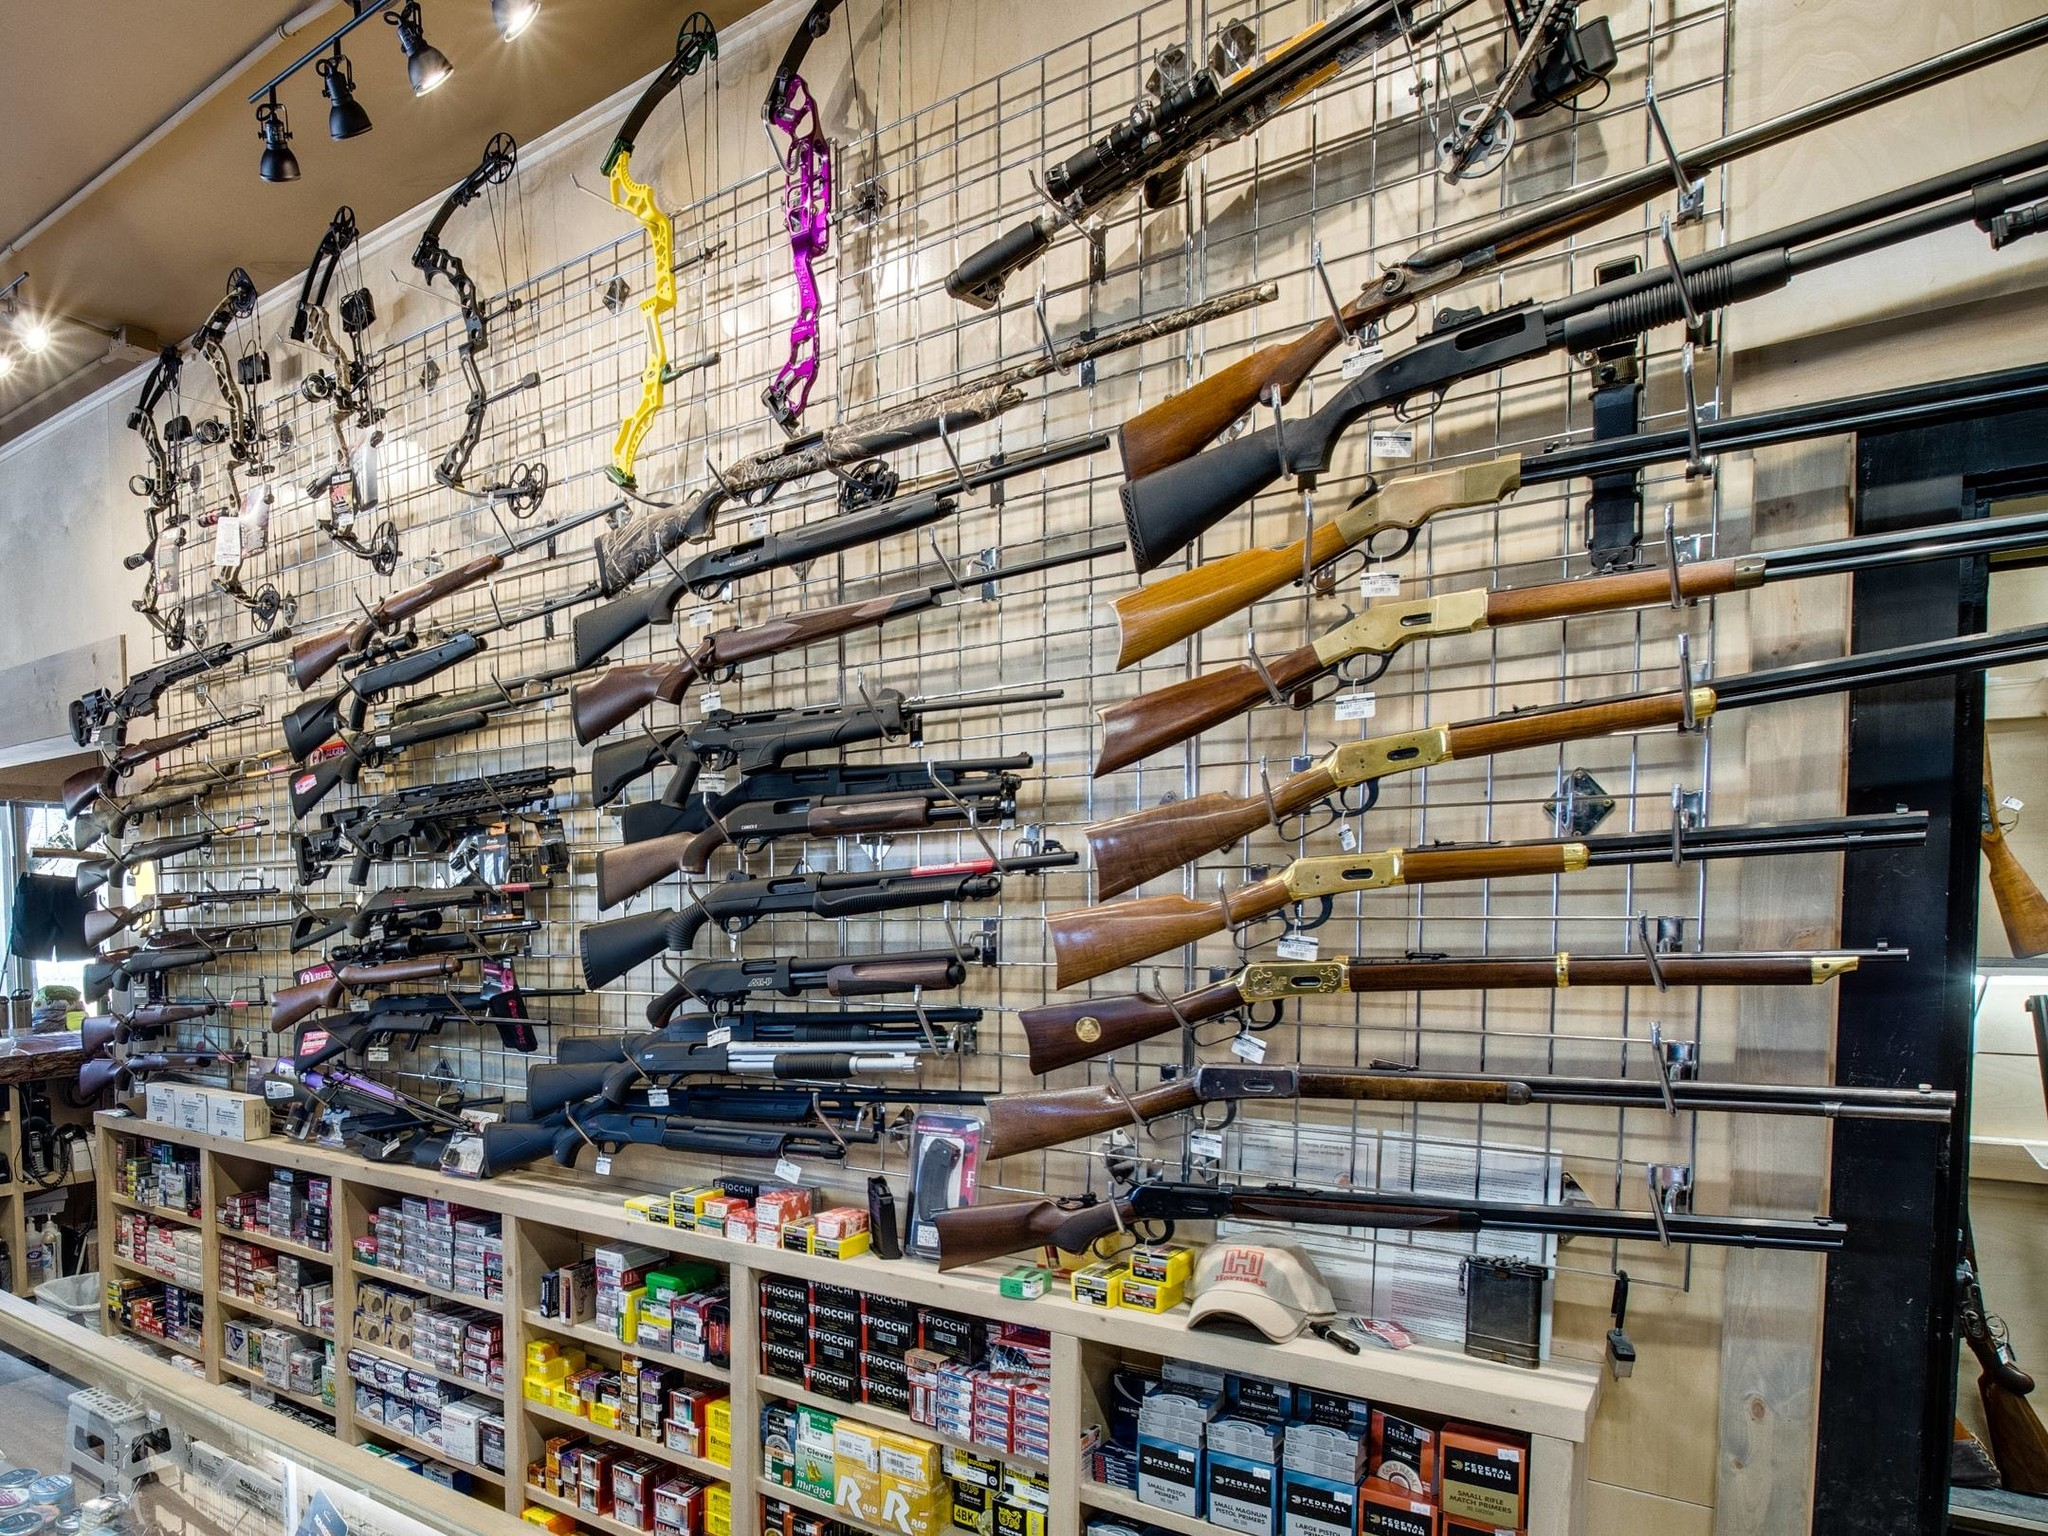 Monashee Outdoors firearms and bows